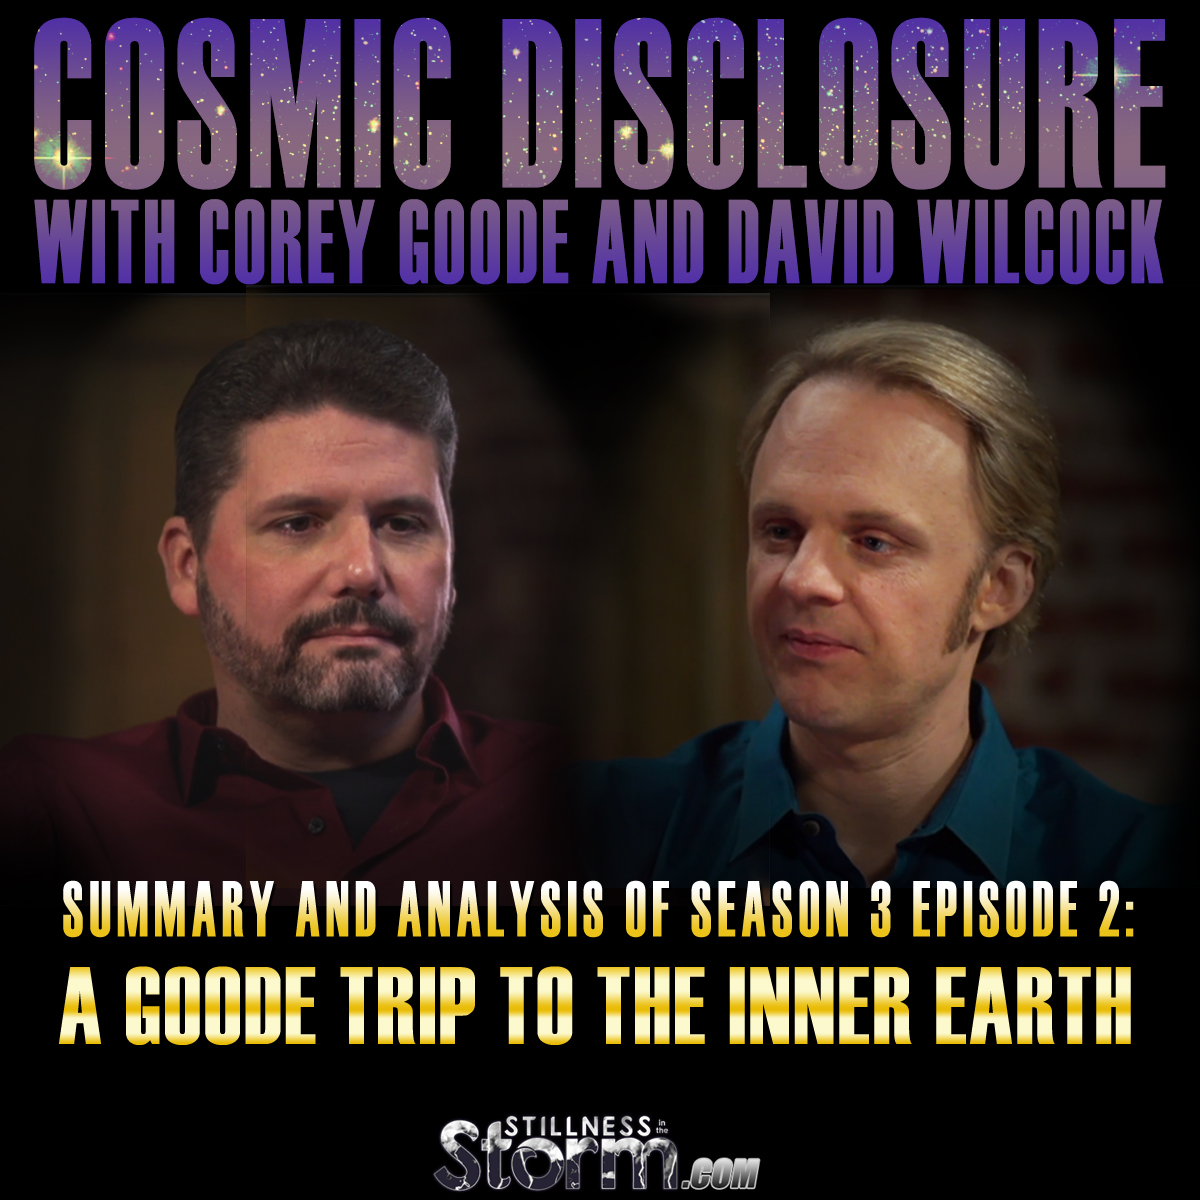 an analysis of earth 2 We will look at how this could come about from the worsening disaster that earth 1 is facing in a bit but first i want to say this is not a scheme, plan, or just fiction but a product of observation and analysis of the massive social and intellectual changes that have been advancing on a geometric scale for the.